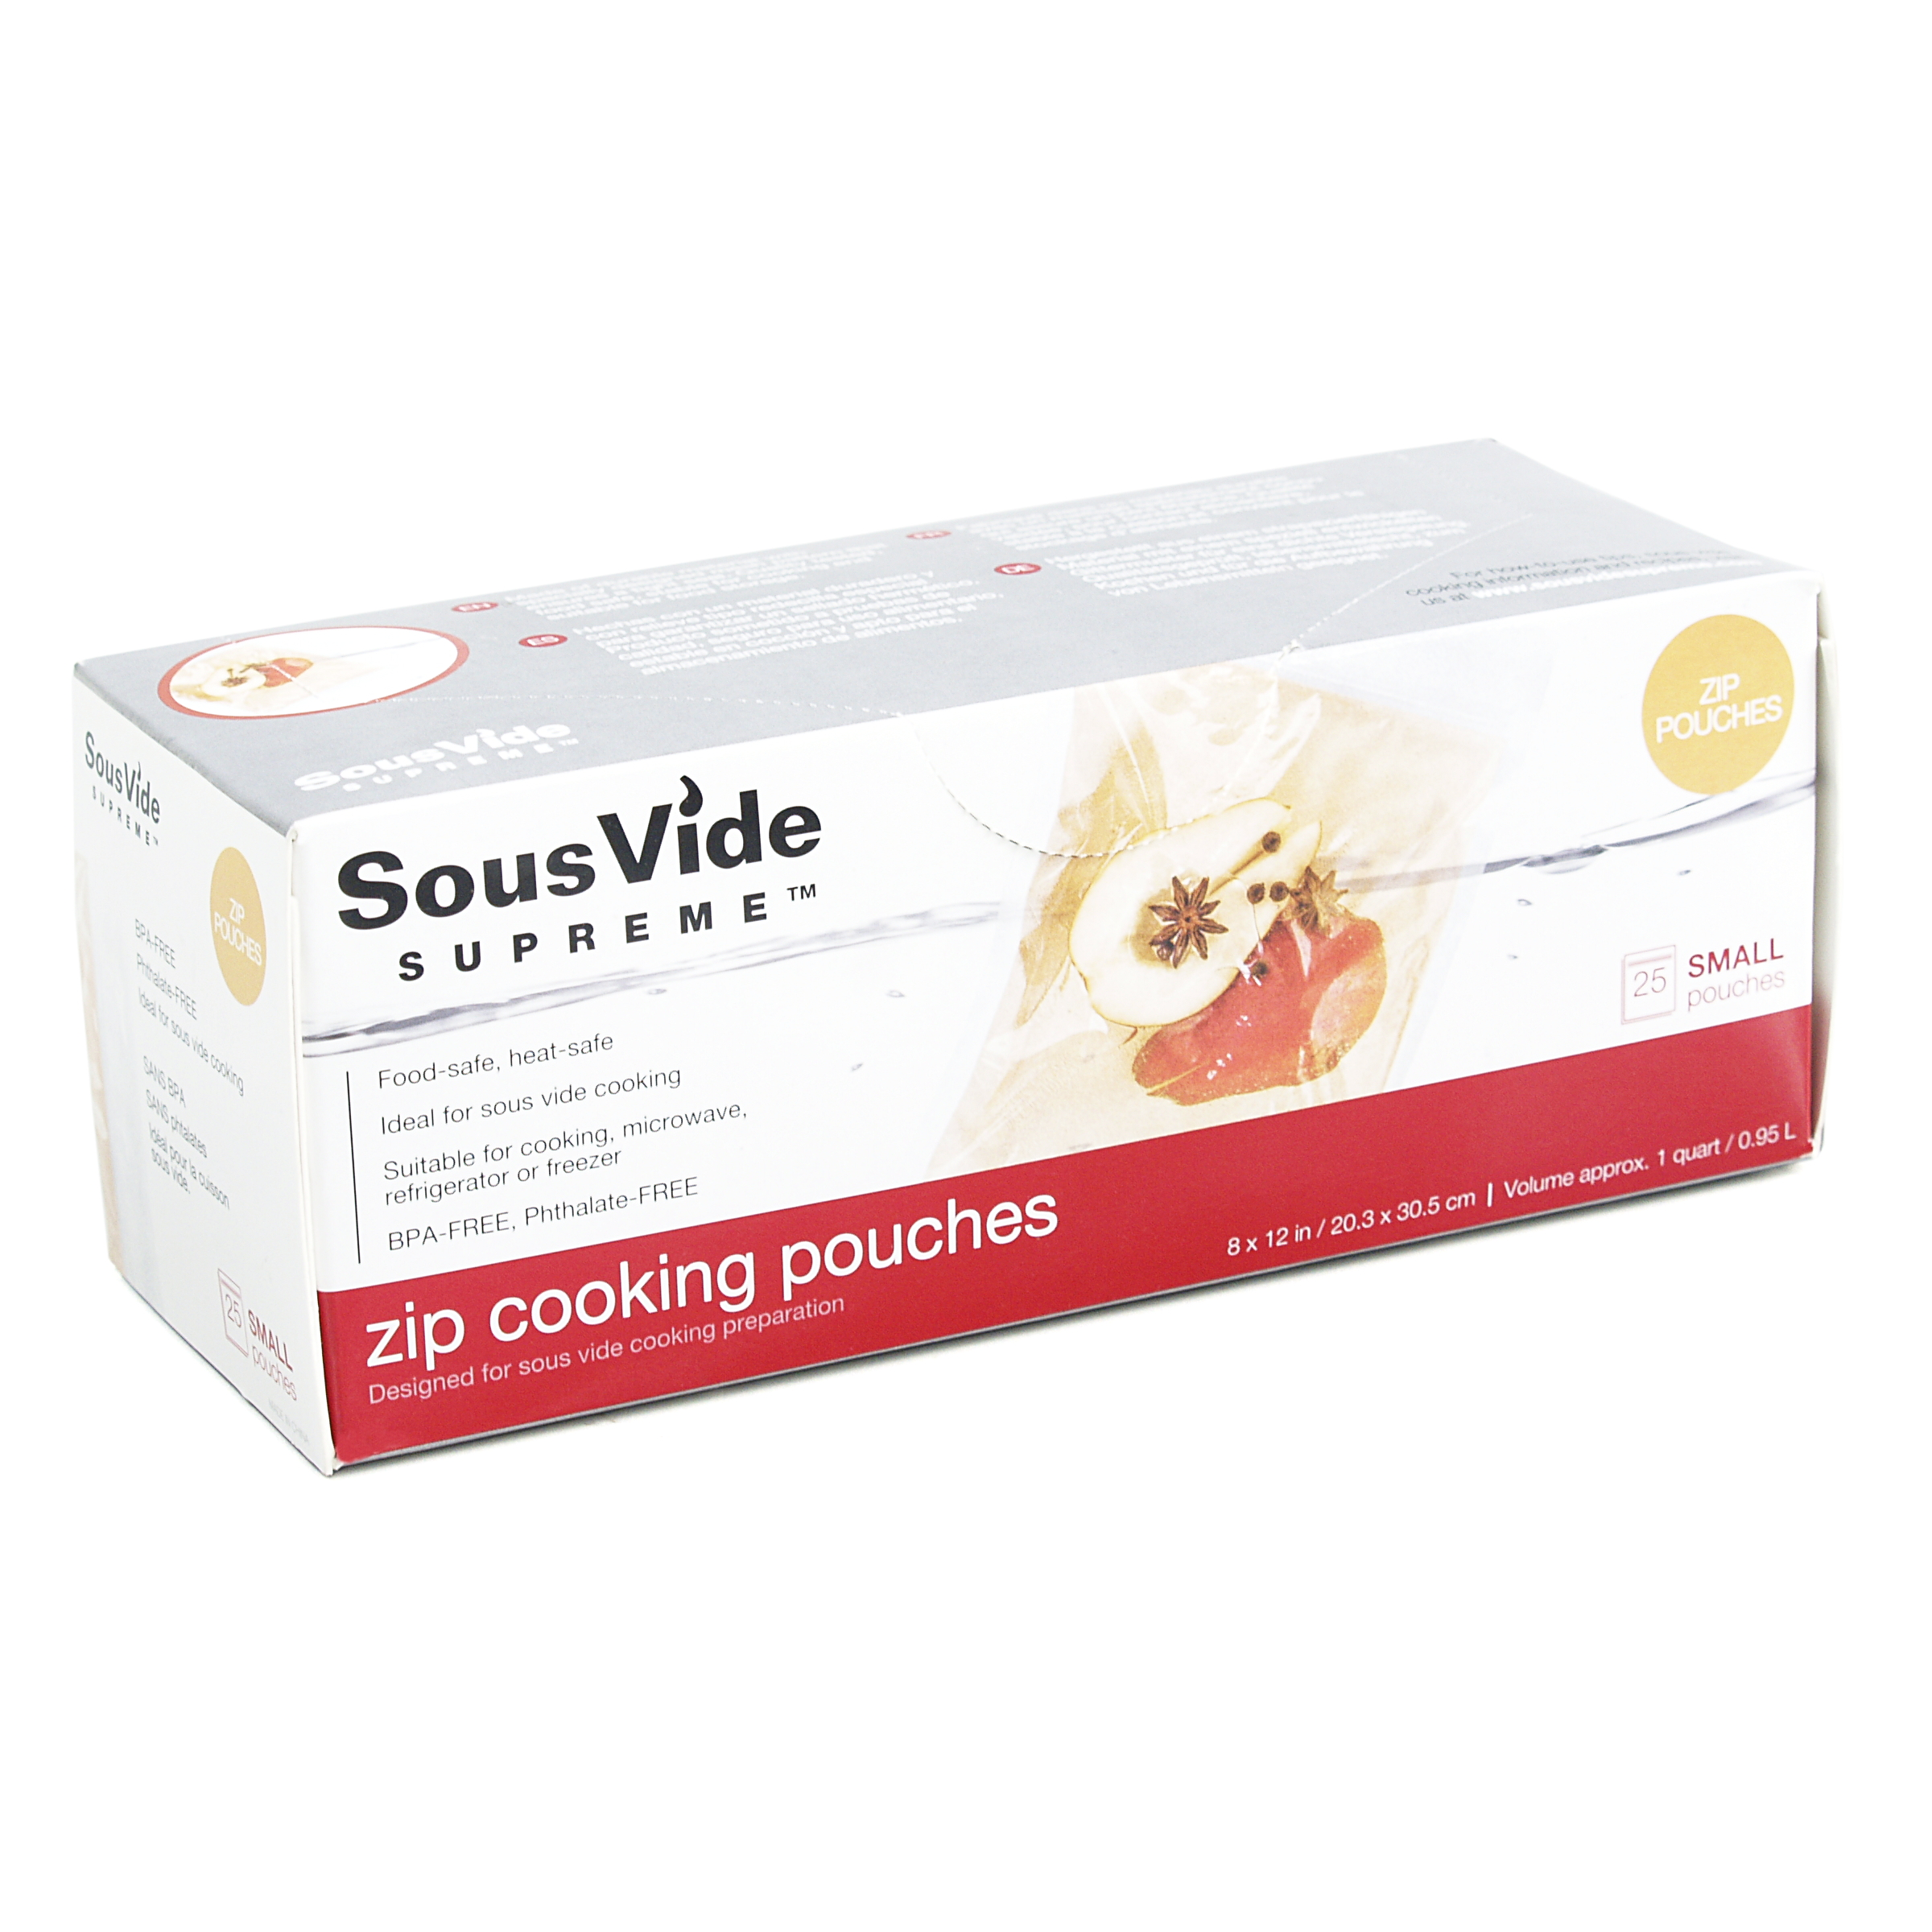 SousVide Supreme Small 1 Quart Zip Cooking Pouches